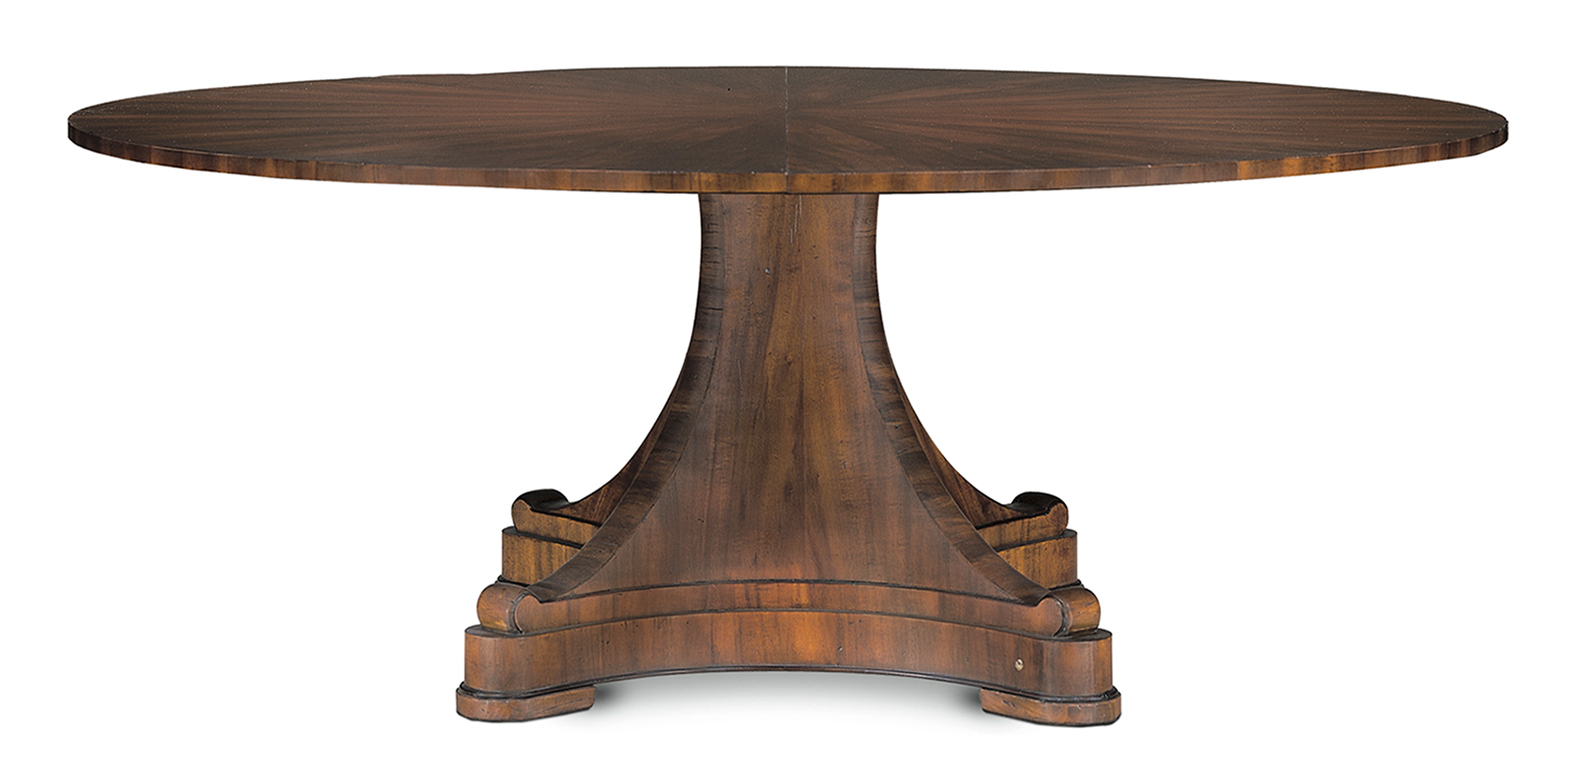 ARLES II DINING TABLE 180